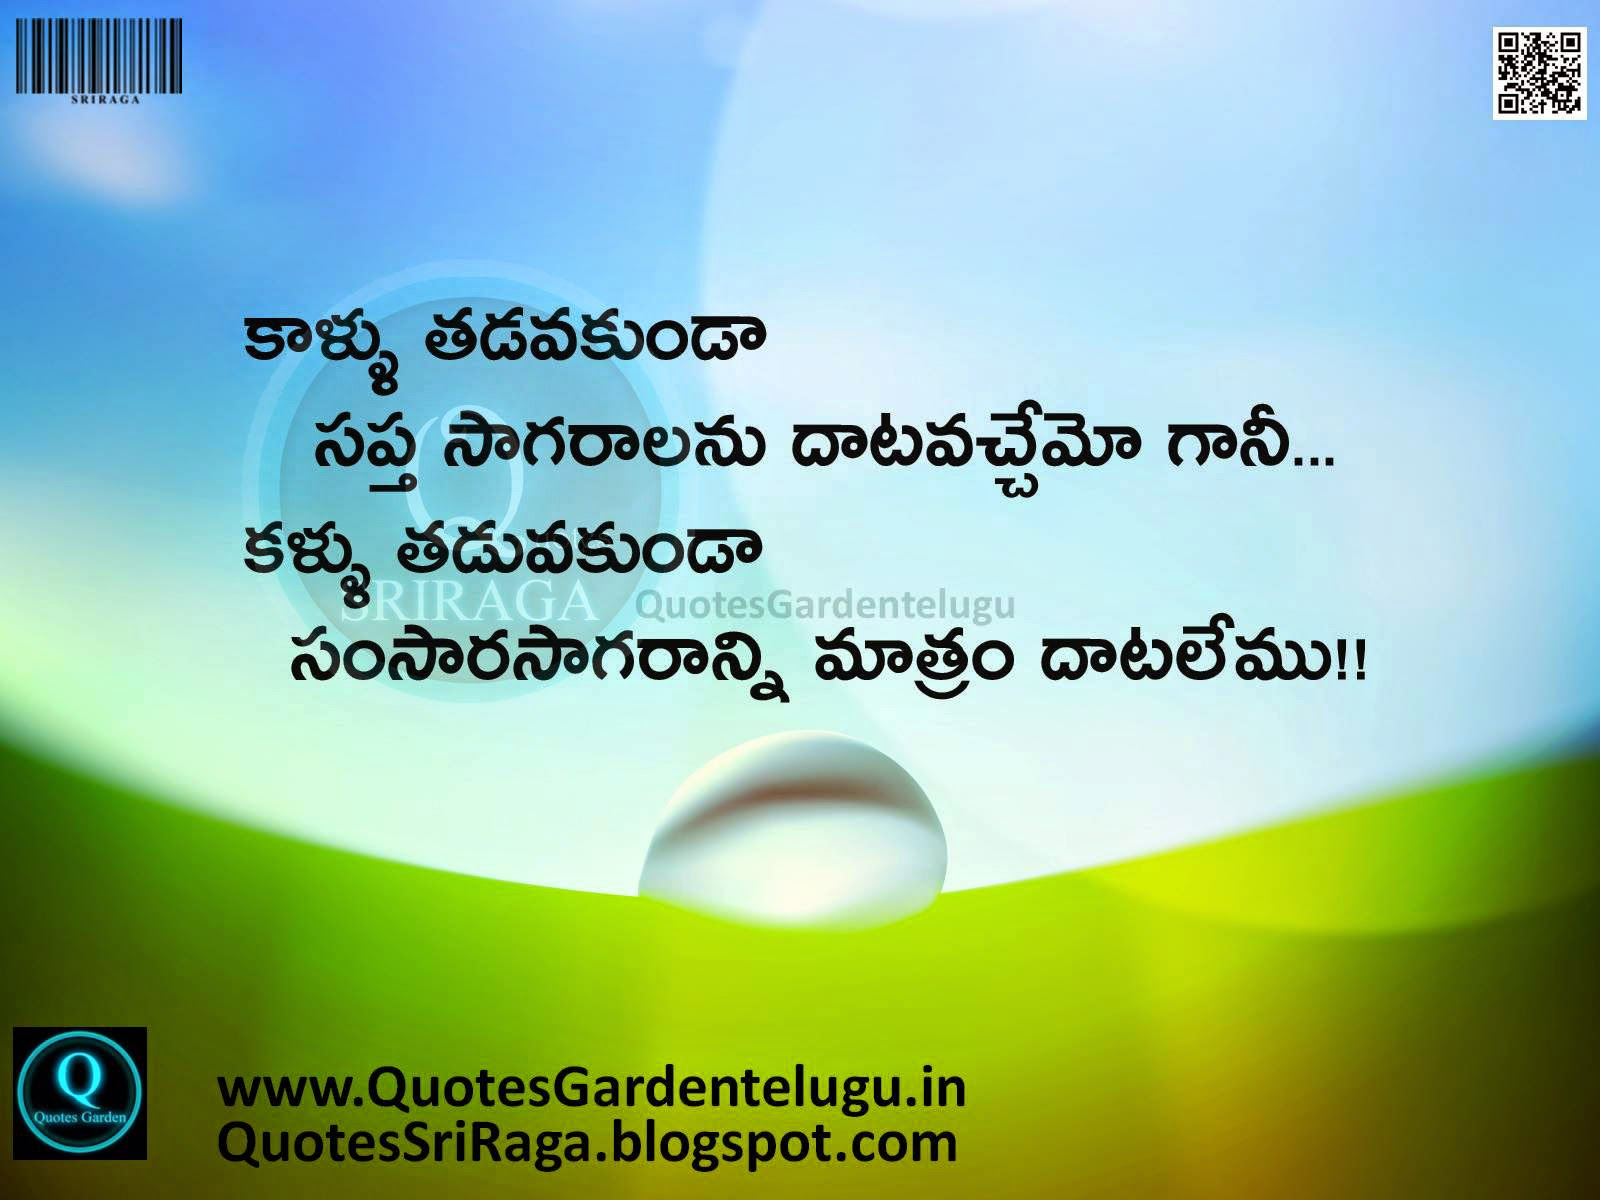 Best telugu life quotes life quotes in telugu best inspirational best telugu life quotes life quotes in telugu best inspirational quotes about life thecheapjerseys Choice Image